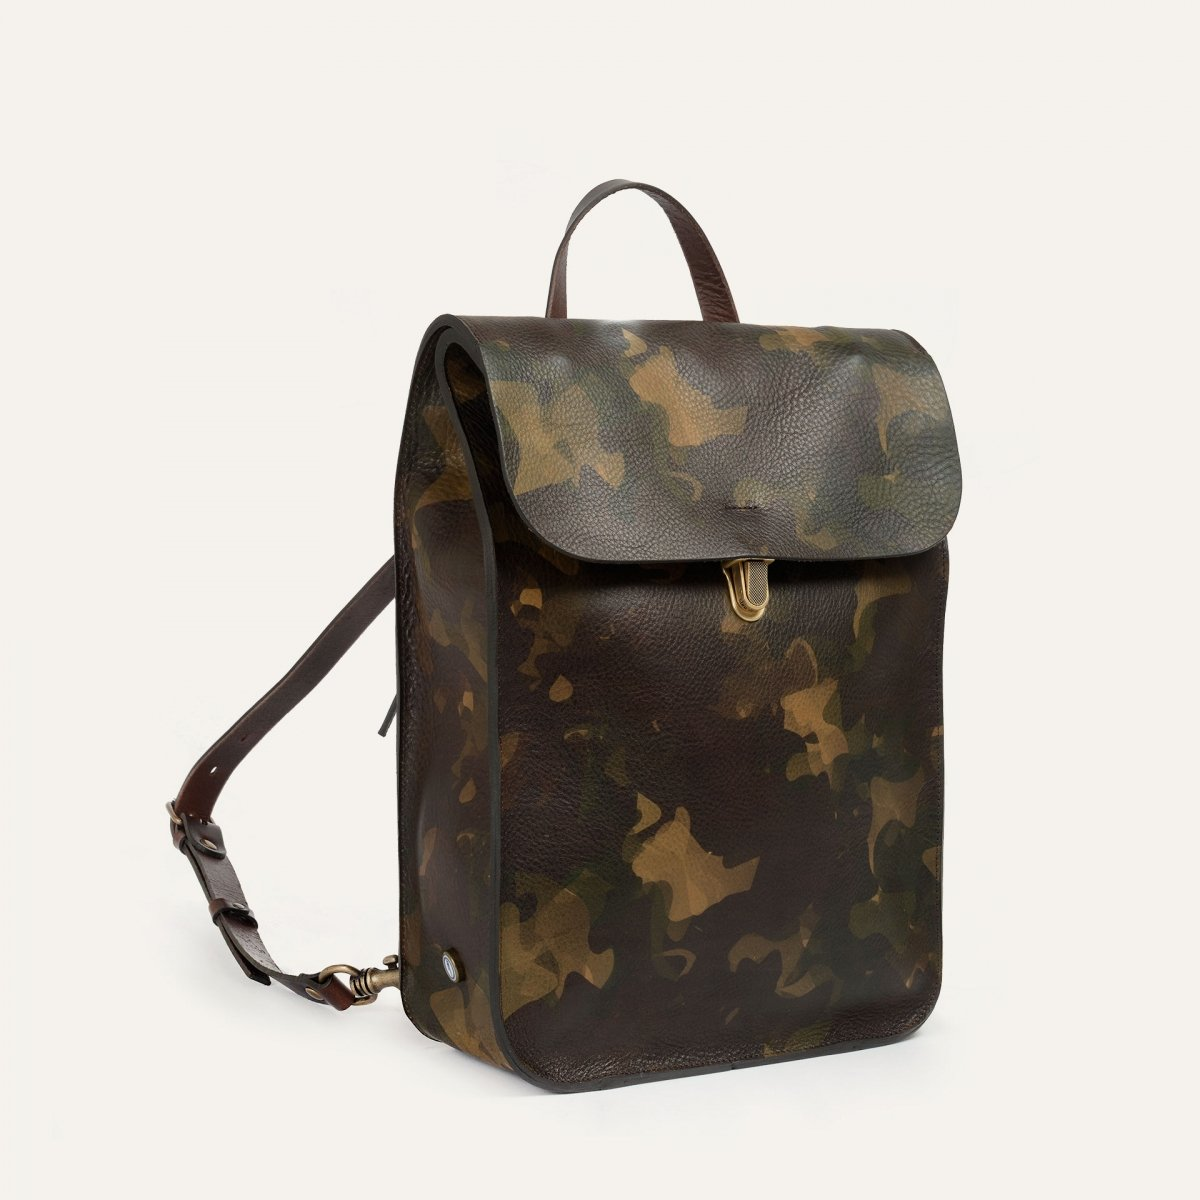 Puncho leather backpack - Camo (image n°2)